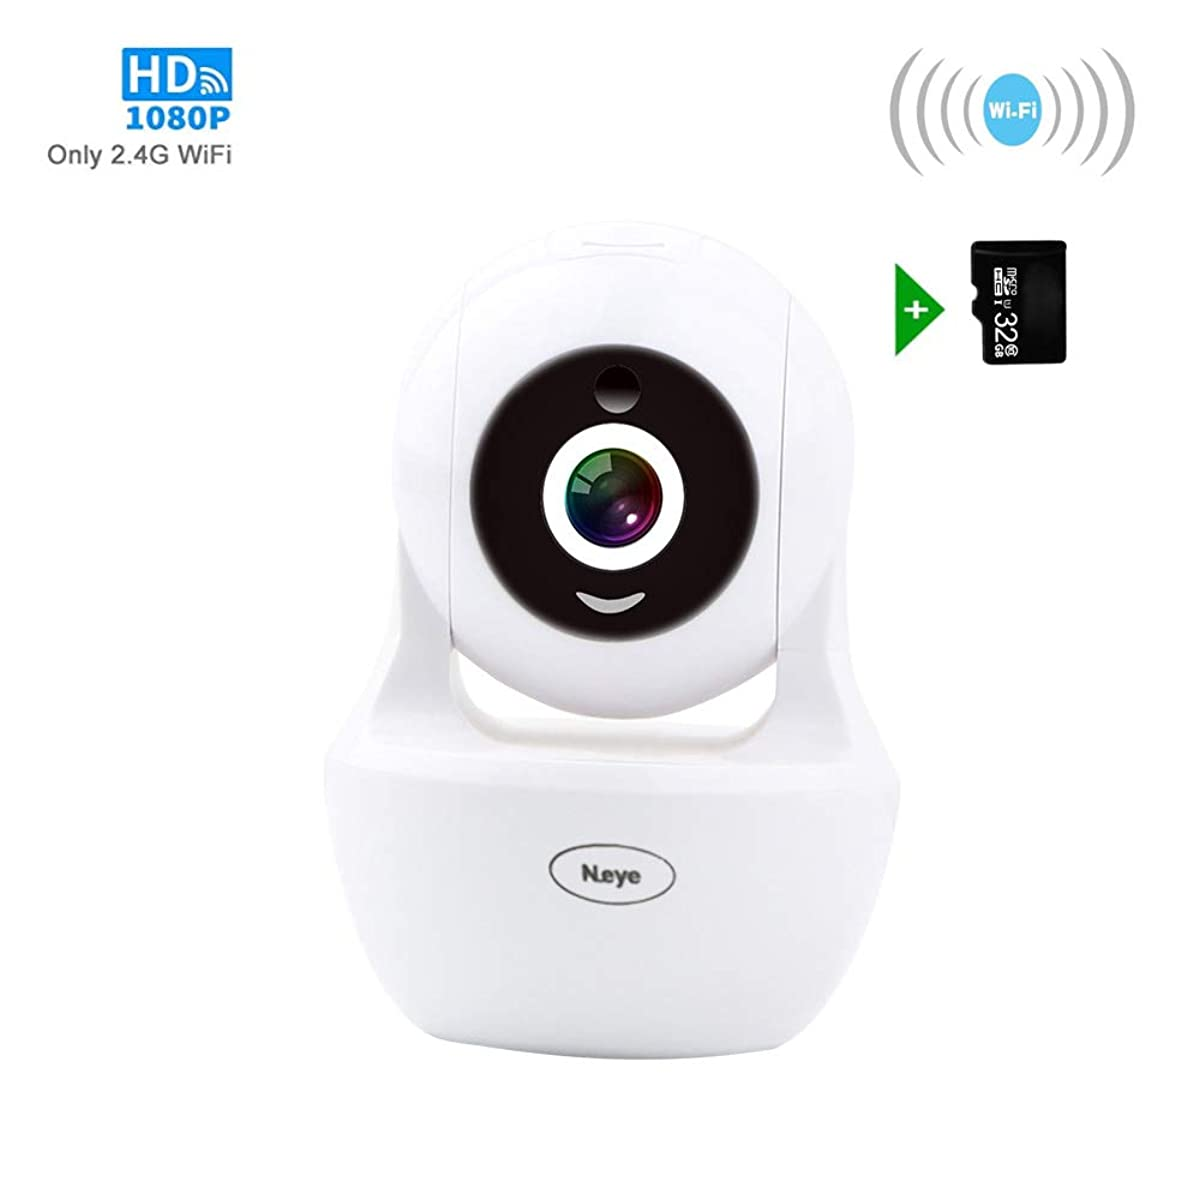 Wireless Camera Indoor,Wireles WiFi Camera, 1080P HD Wireless Night Vision Camera, Pet Monitoring Baby Camera, Built-in 32G Memory Card,IR LED Motion Detection IP Cameras for Indoor, Support Max 128GB